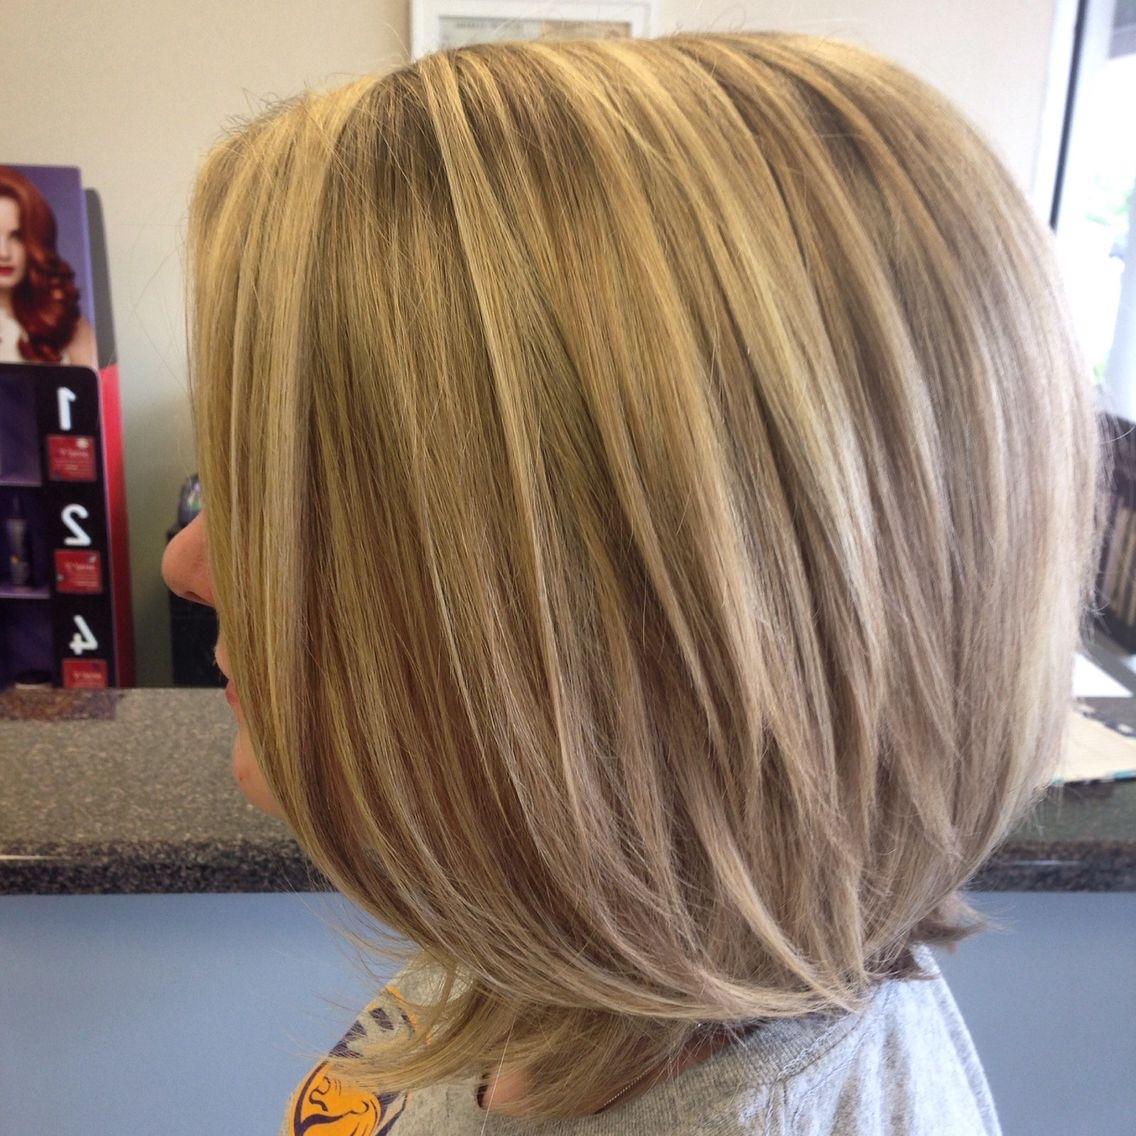 Dark Blonde Hair With Highlights. Long Bob Haircut. #hairbysavannahk Within Well Known Dark And Light Contrasting Blonde Lob Hairstyles (Gallery 8 of 20)